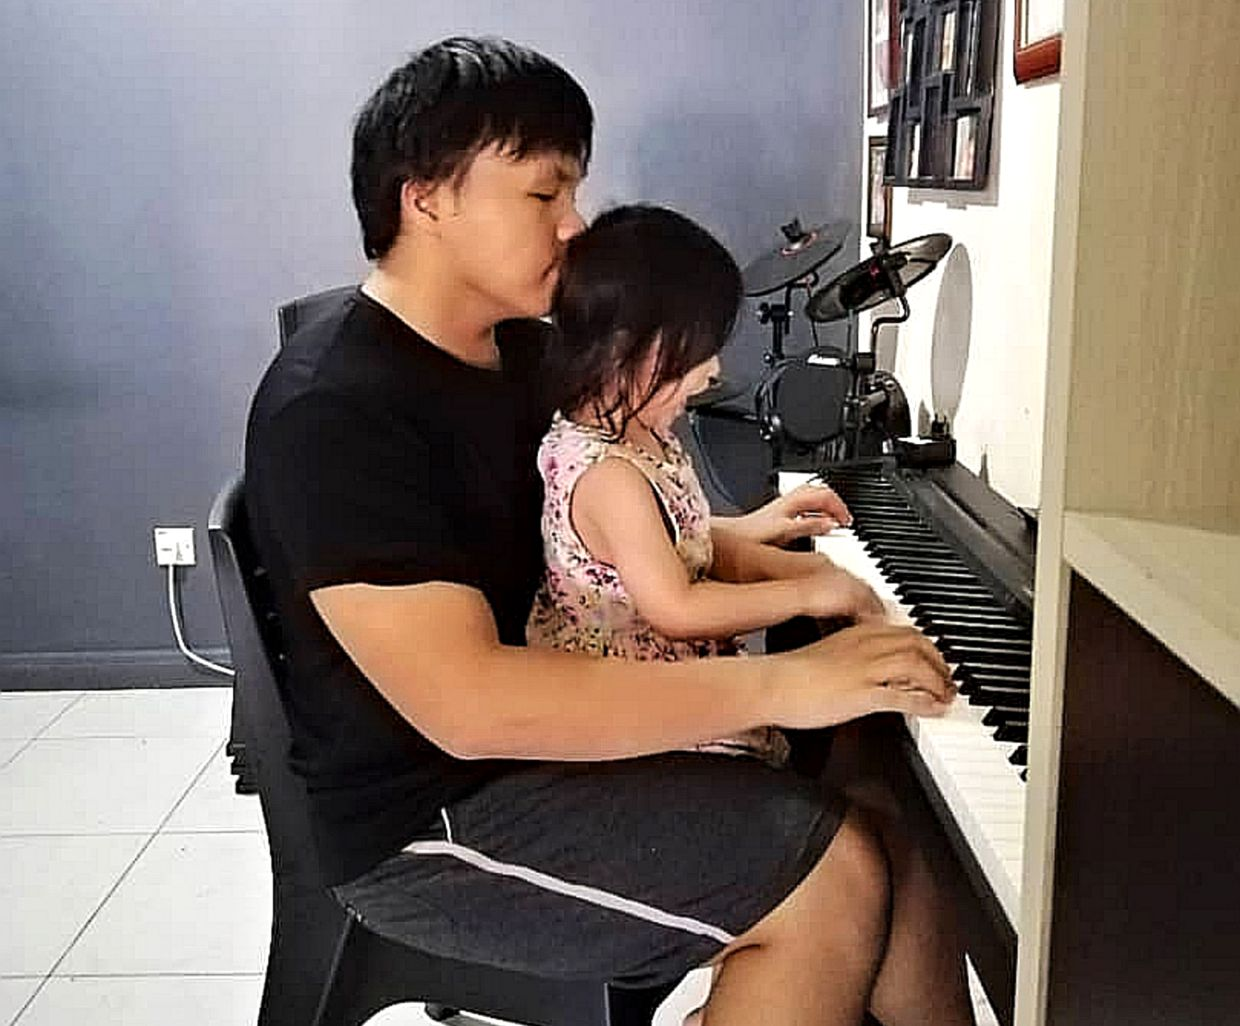 Zechery with his little sister, playing the piano at home during the MCO/CMCO. Photo: Elmus Zechery